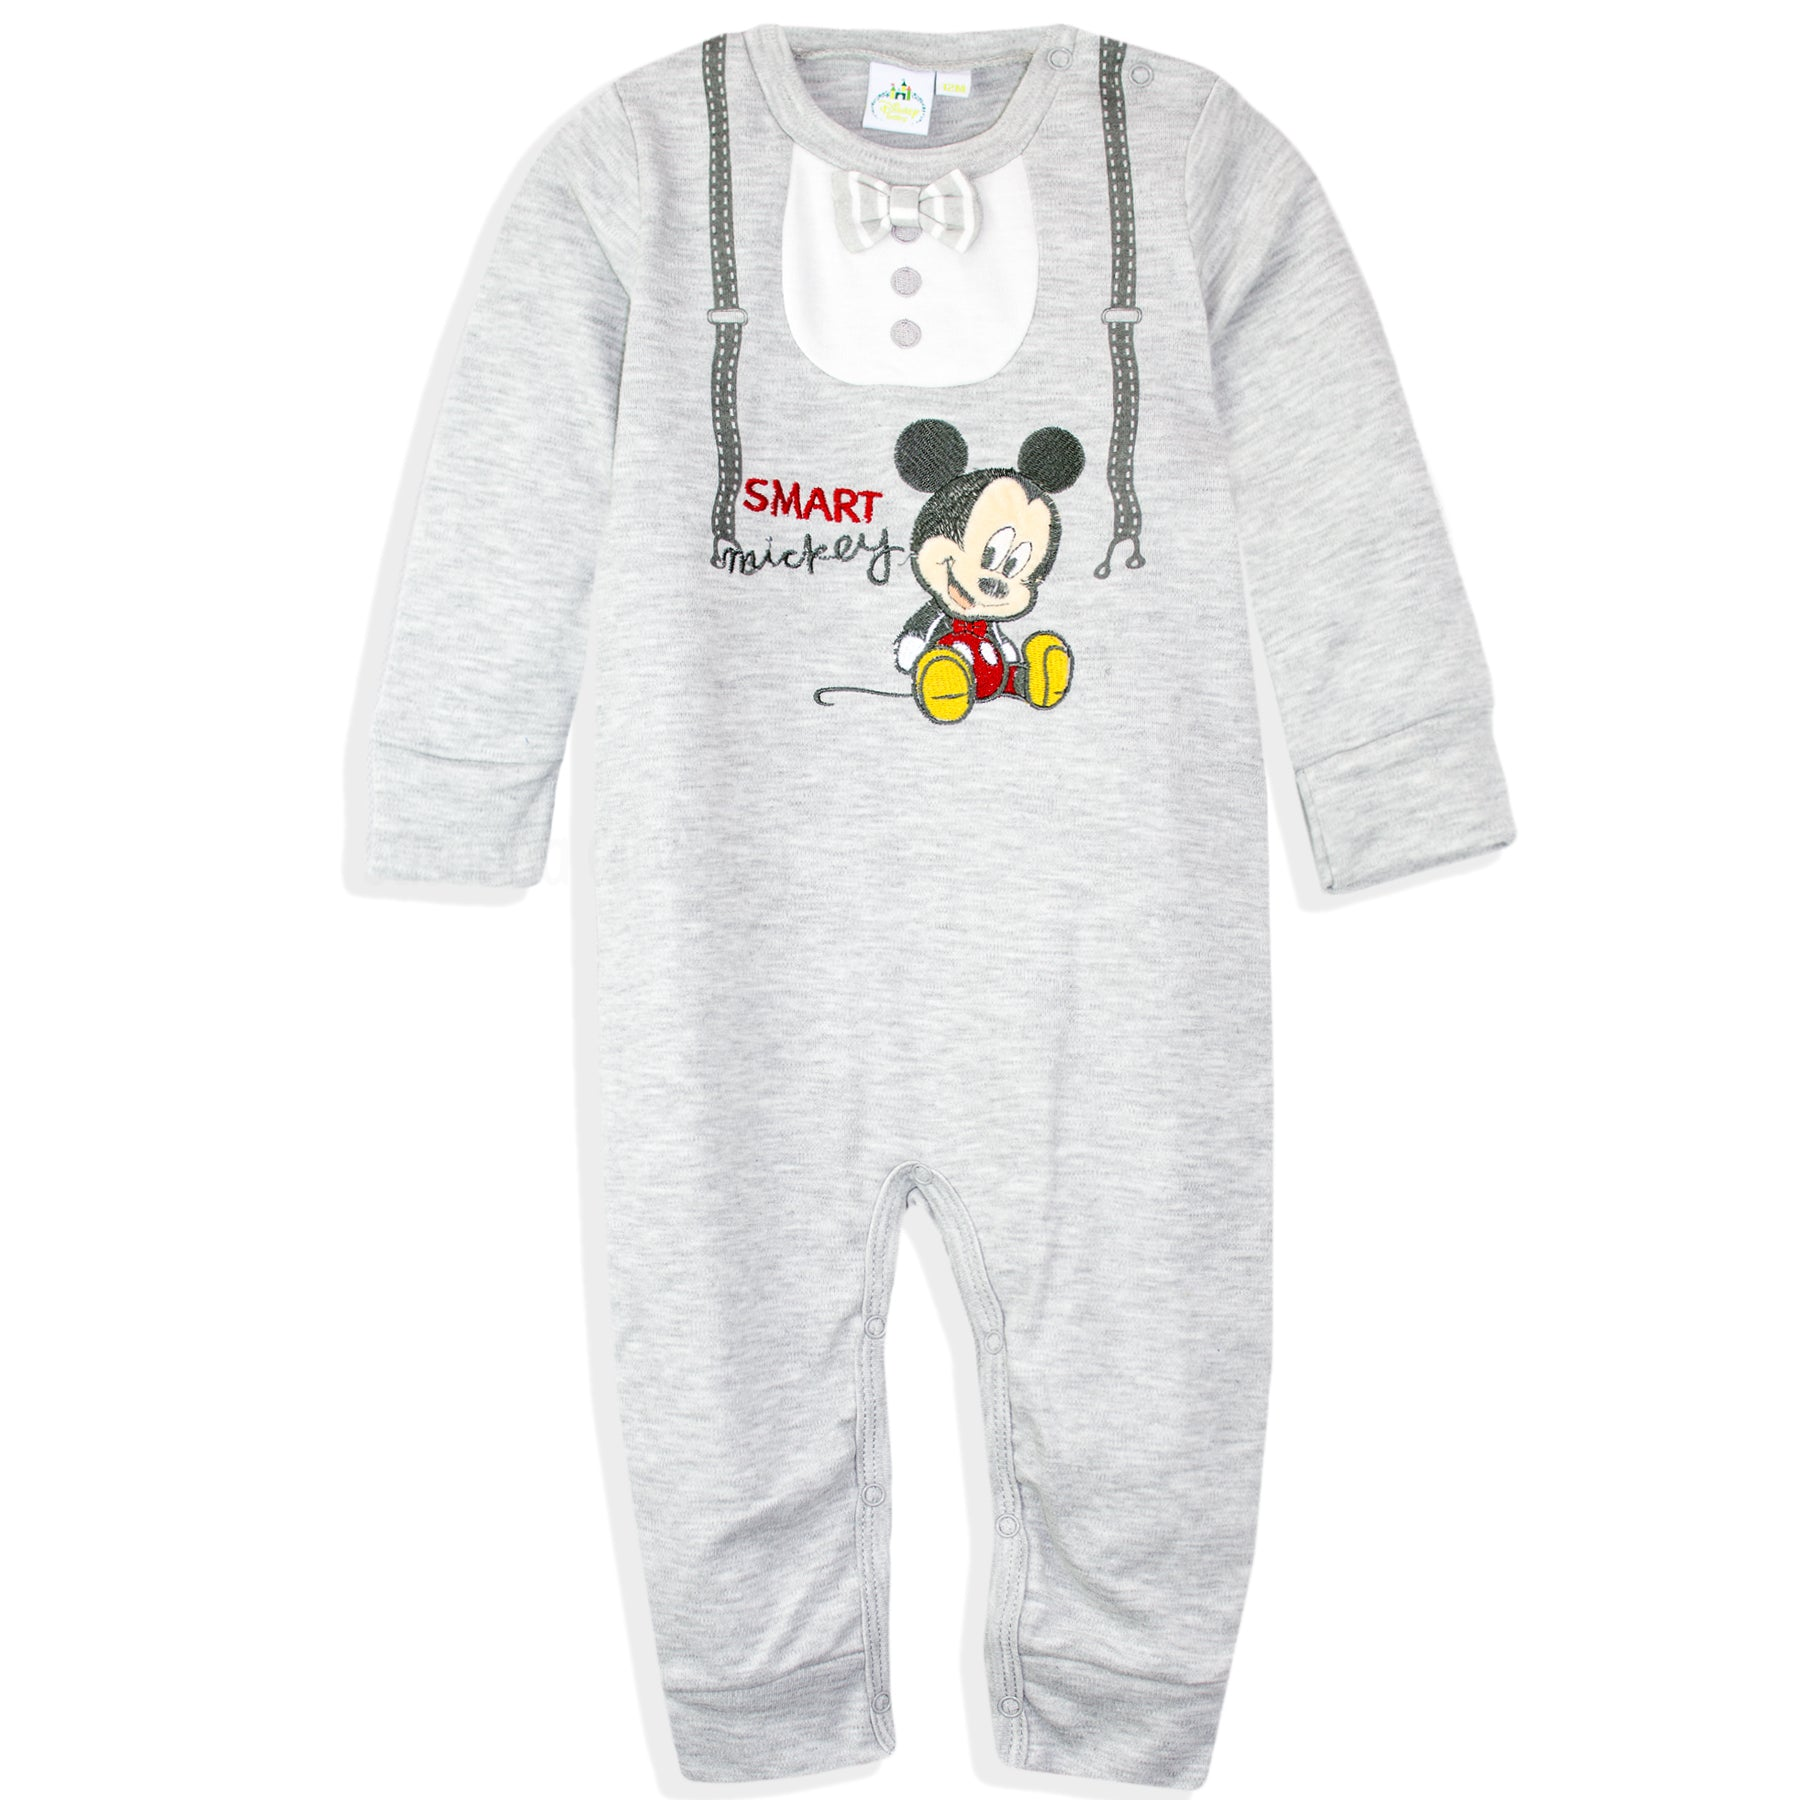 Disney Mickey Mouse Baby Boys 100% Cotton Romper Suit, Onesie 0-24 Months GIFT BOX